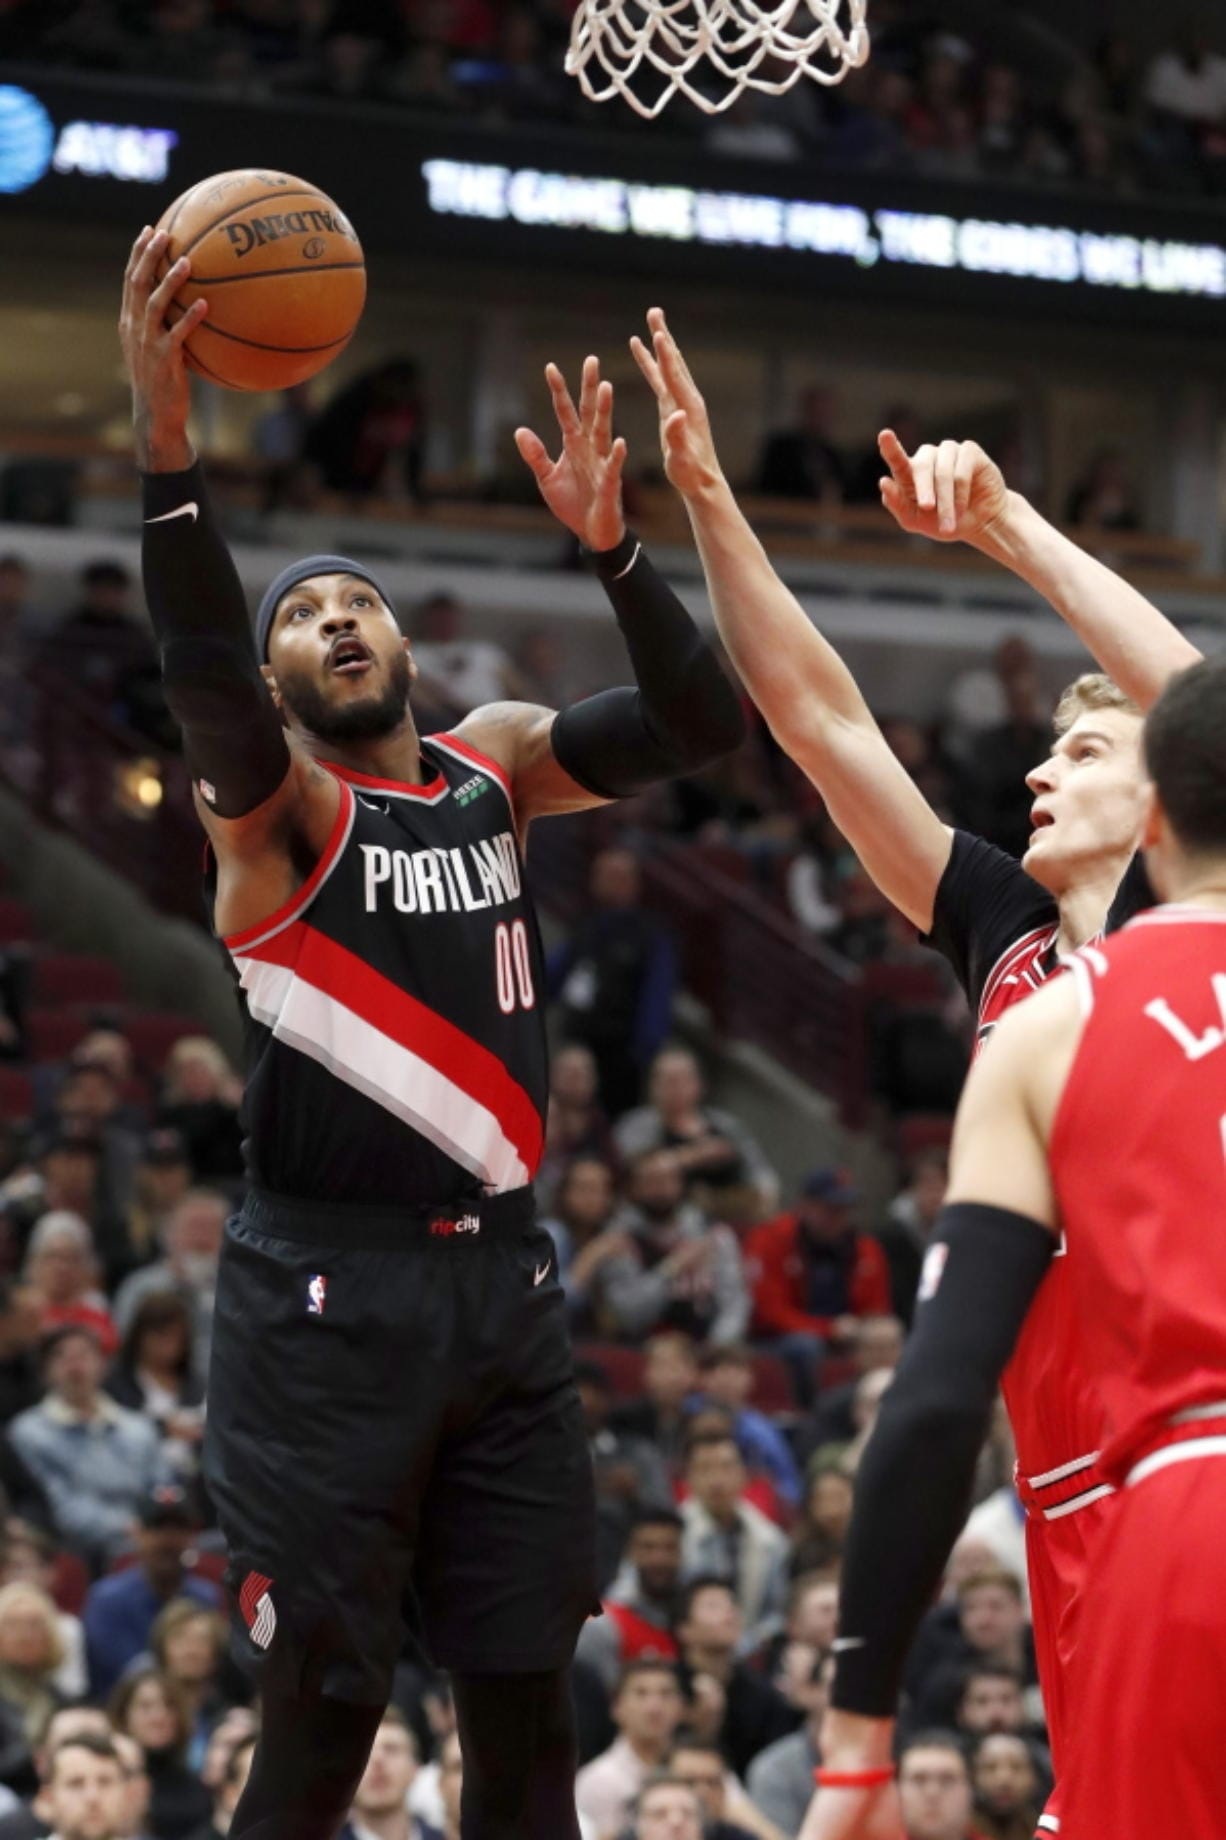 Portland Trail Blazers' Carmelo Anthony scores past Chicago Bulls' Lauri Markkanen during the first half of an NBA basketball game Monday, Nov. 25, 2019, in Chicago. (AP Photo/Charles Rex Arbogast)